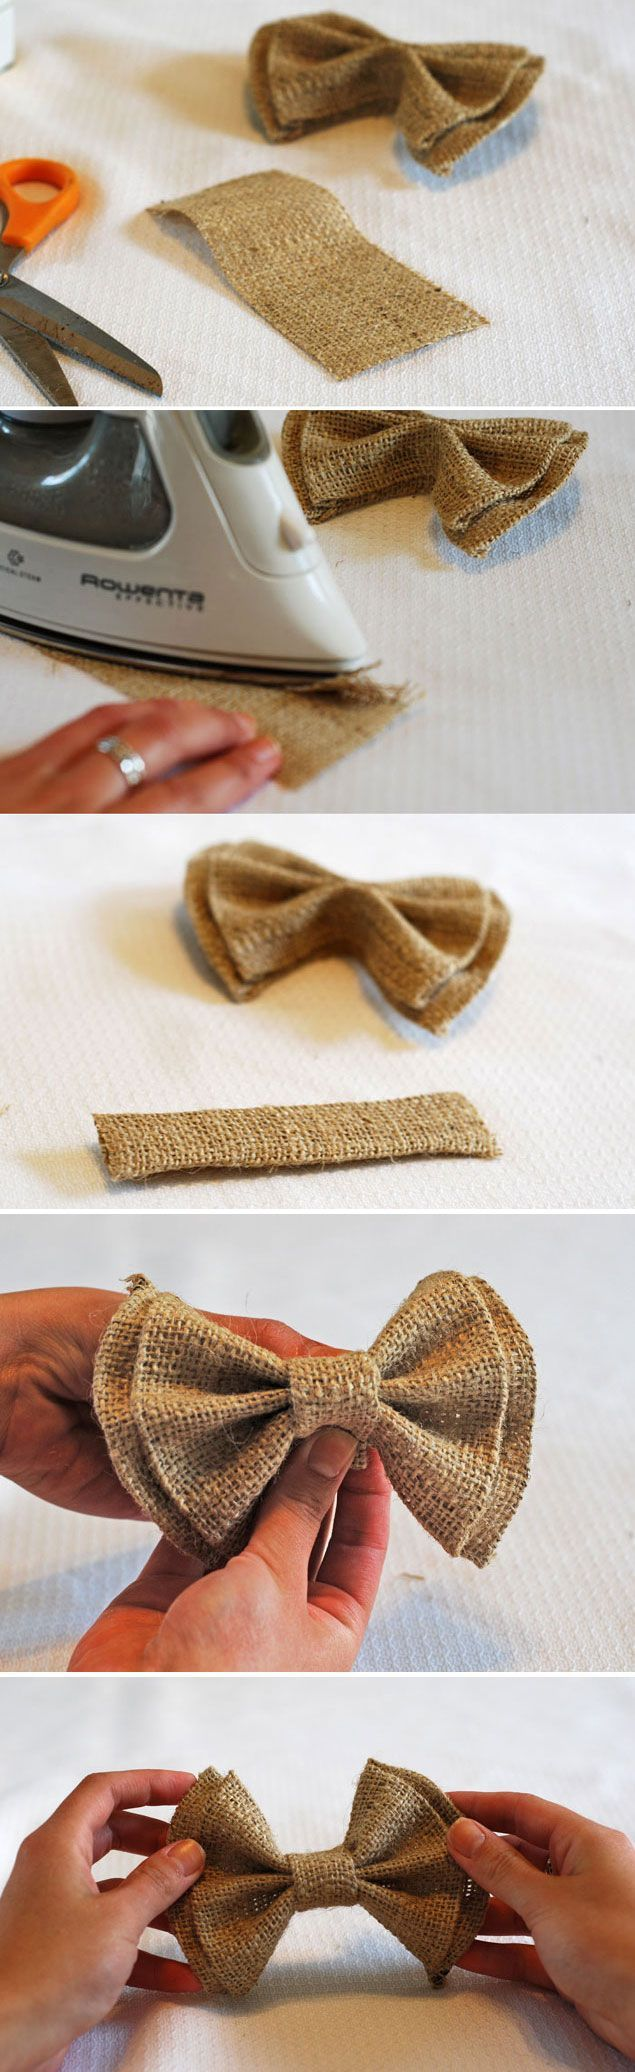 No Sew DIY Clip on Bow Ties – could make regular ties out of burlap as well. There is also colored burlap. What a neat idea for a